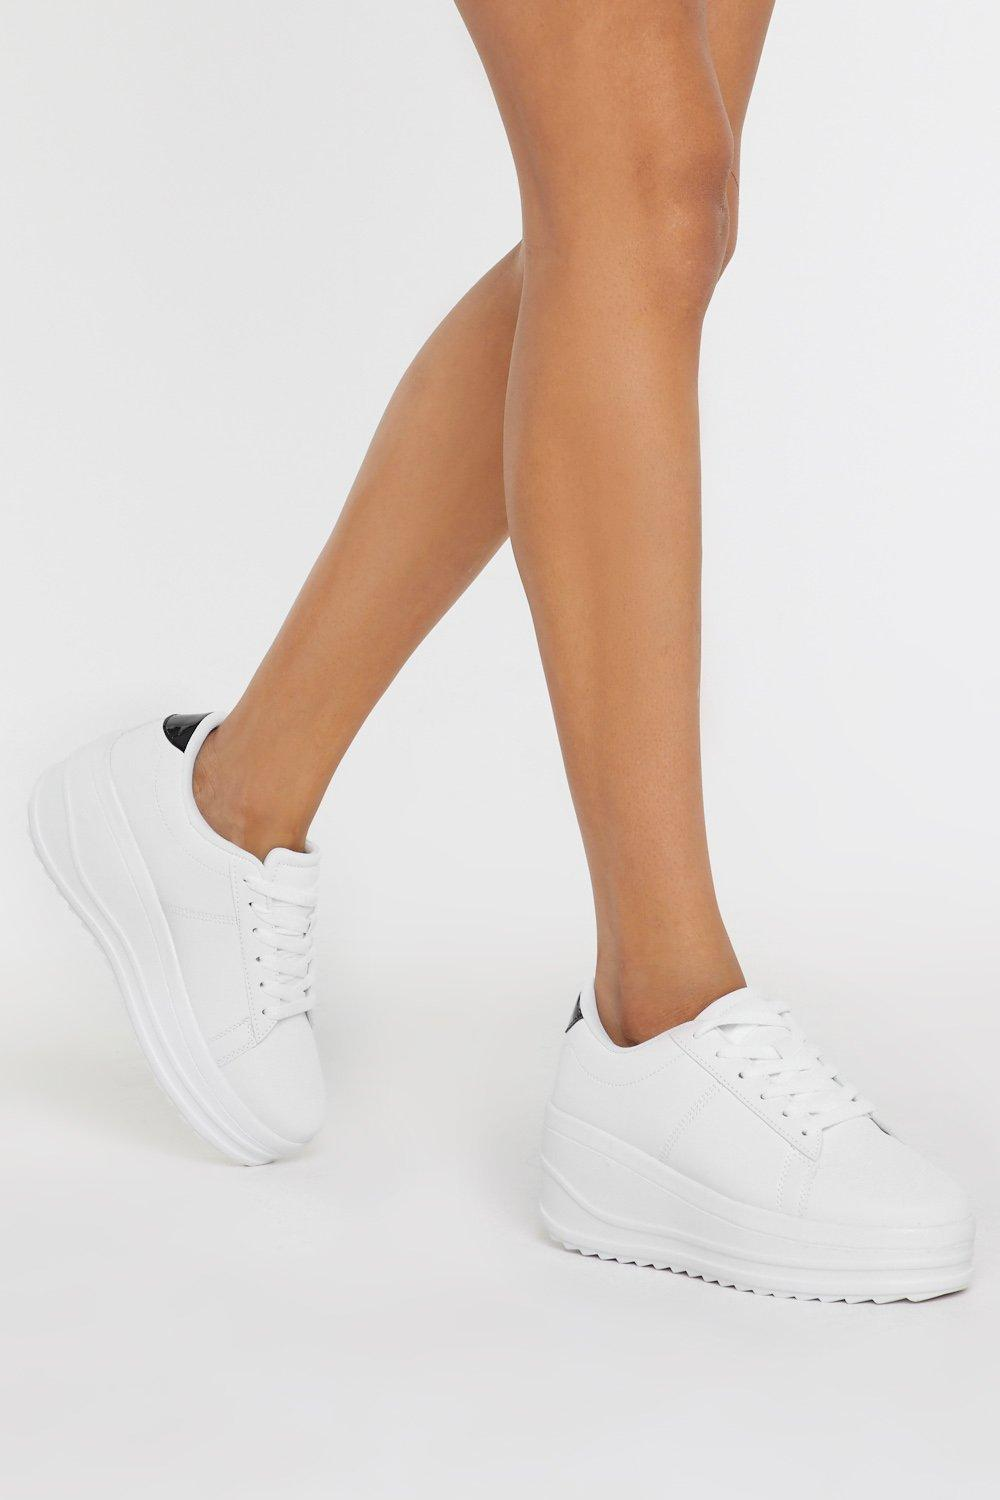 81fe8a1f95b As High as Slope Platform Sneakers | Shop Clothes at Nasty Gal!